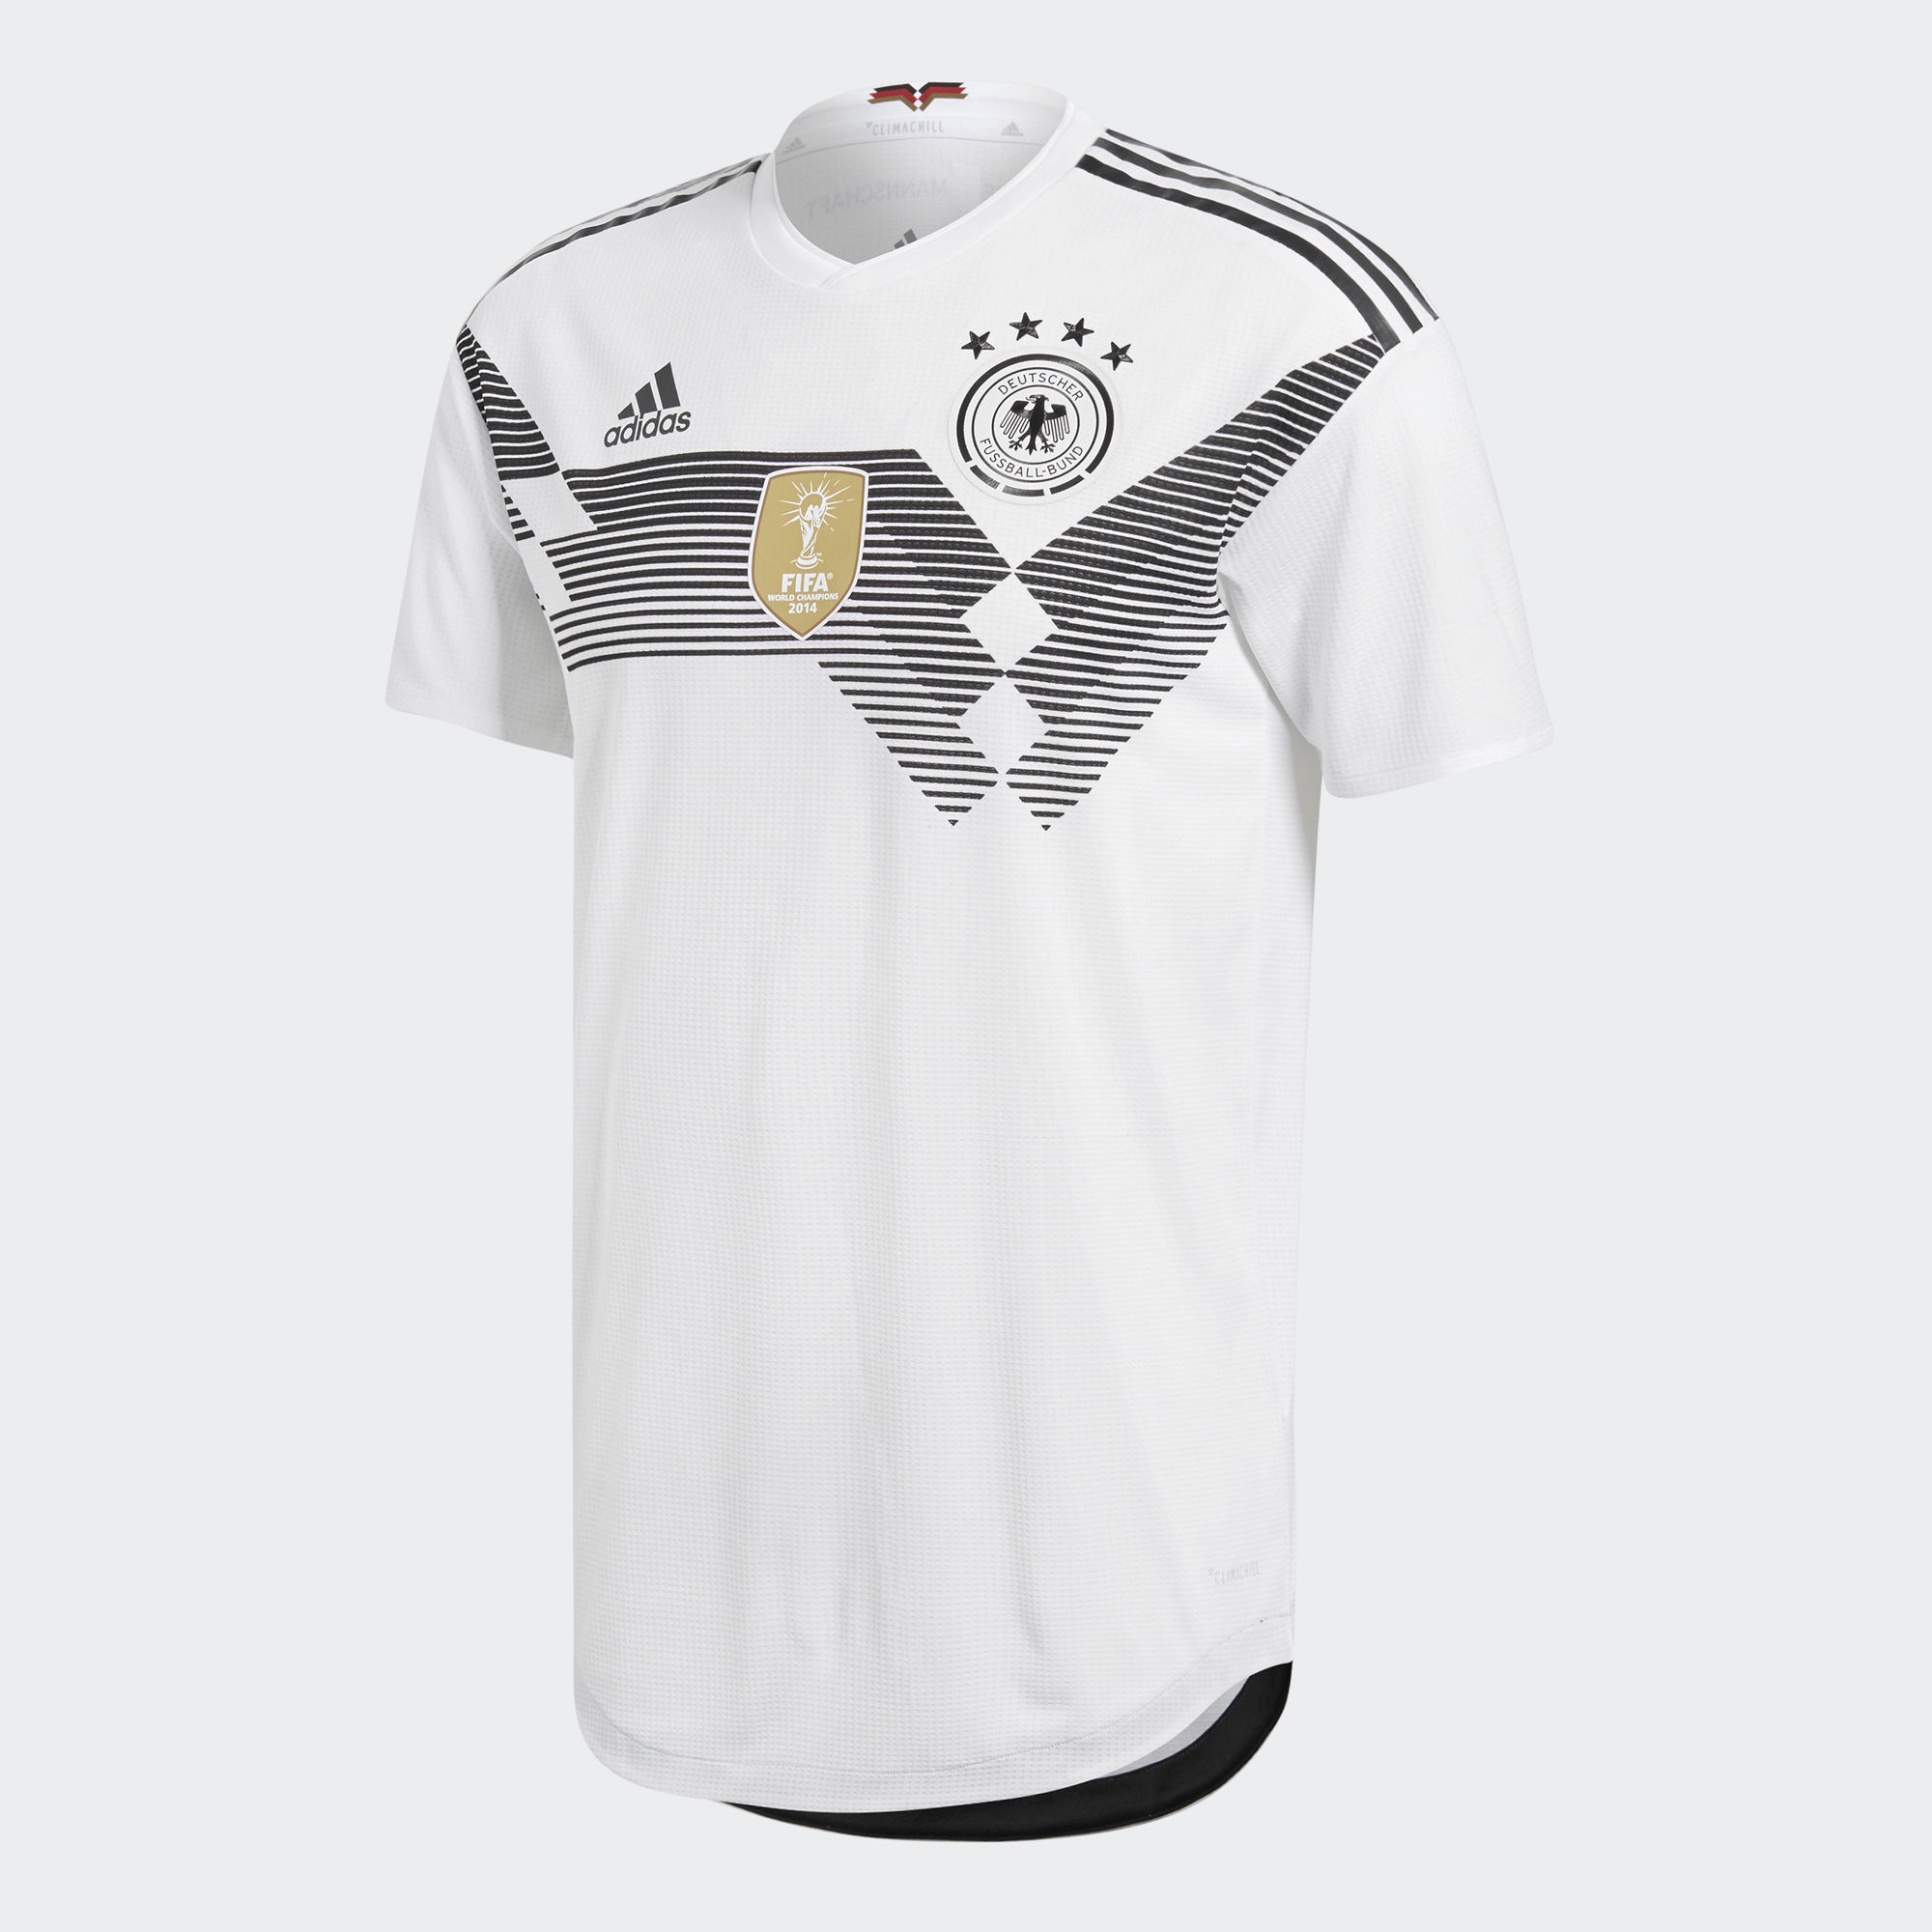 64ca6b39c2a ... Click to enlarge image germany 2018 world cup adidas home kit e.jpg ...